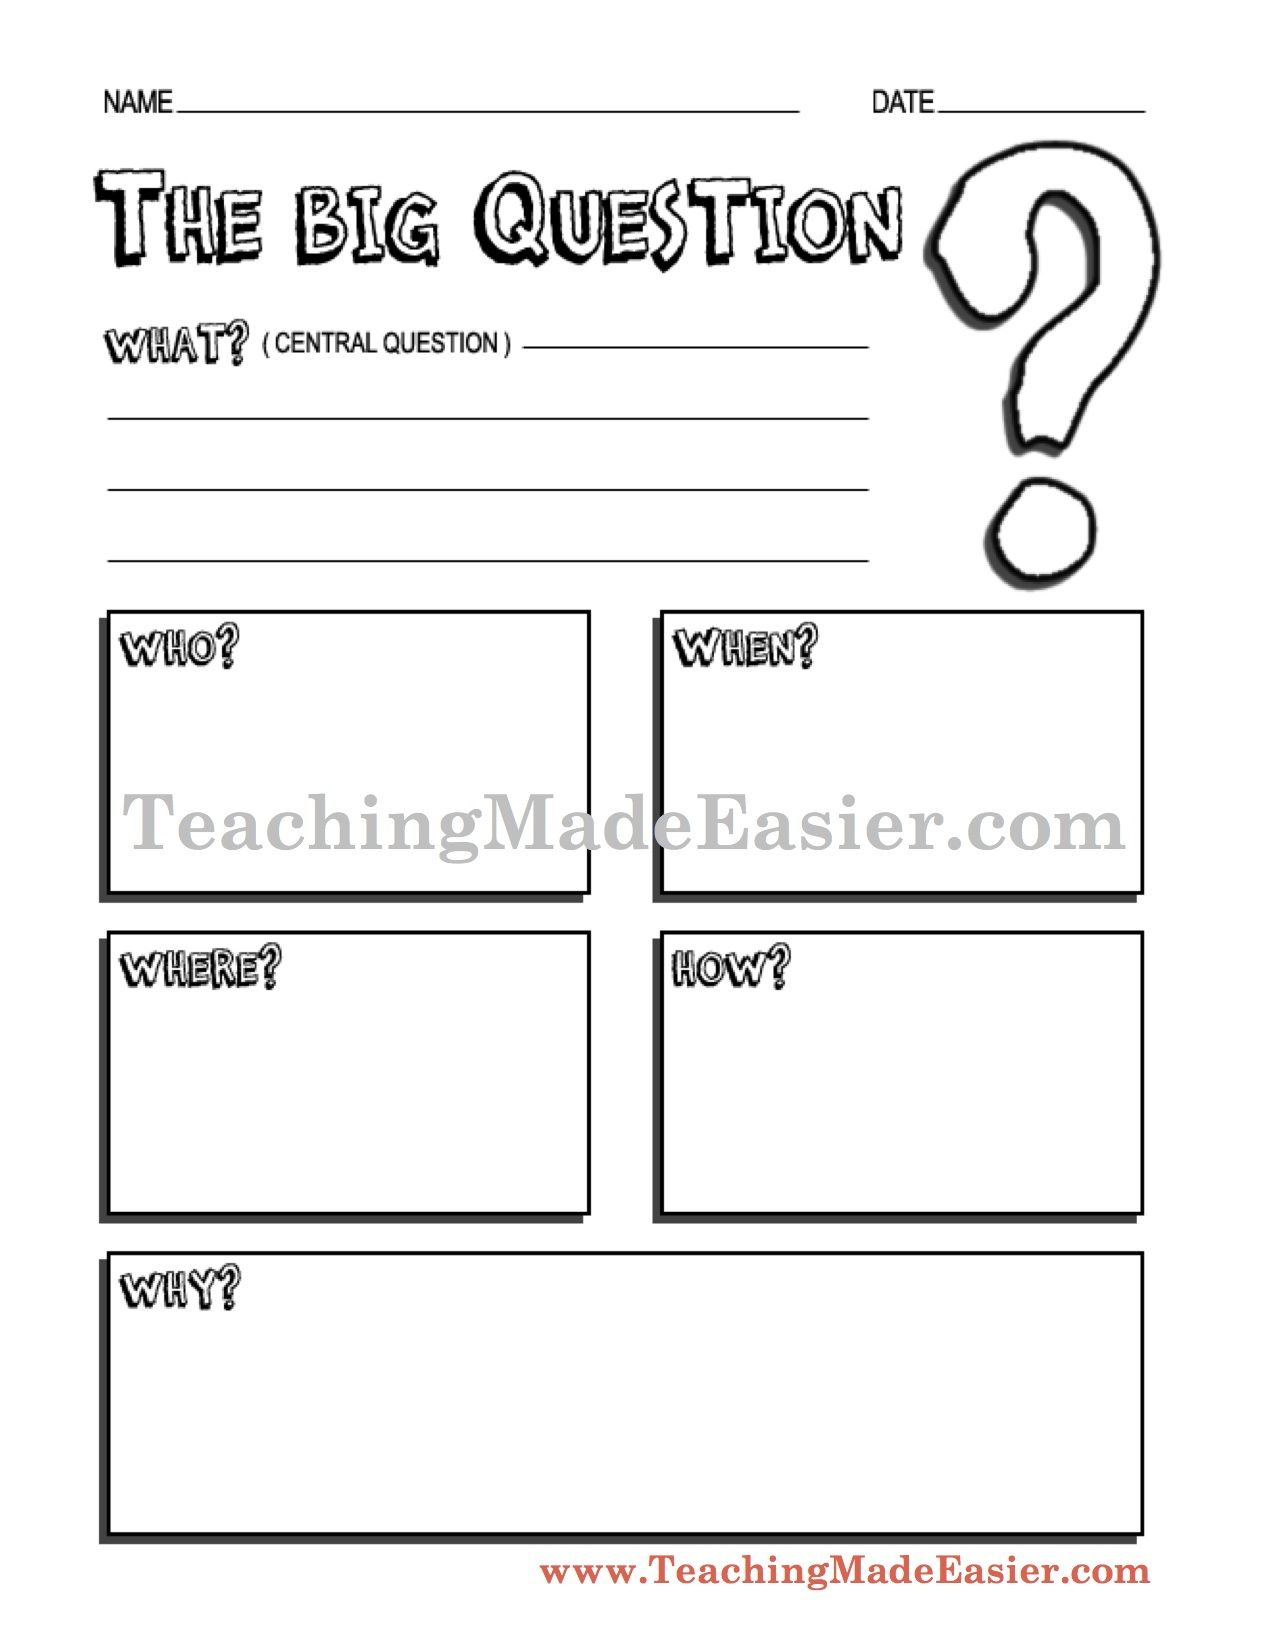 worksheet Lorax Worksheet 3 easy steps step 1 enter list of questions or story elements teachingmadeeasier com masters click graphic organizers 2 general